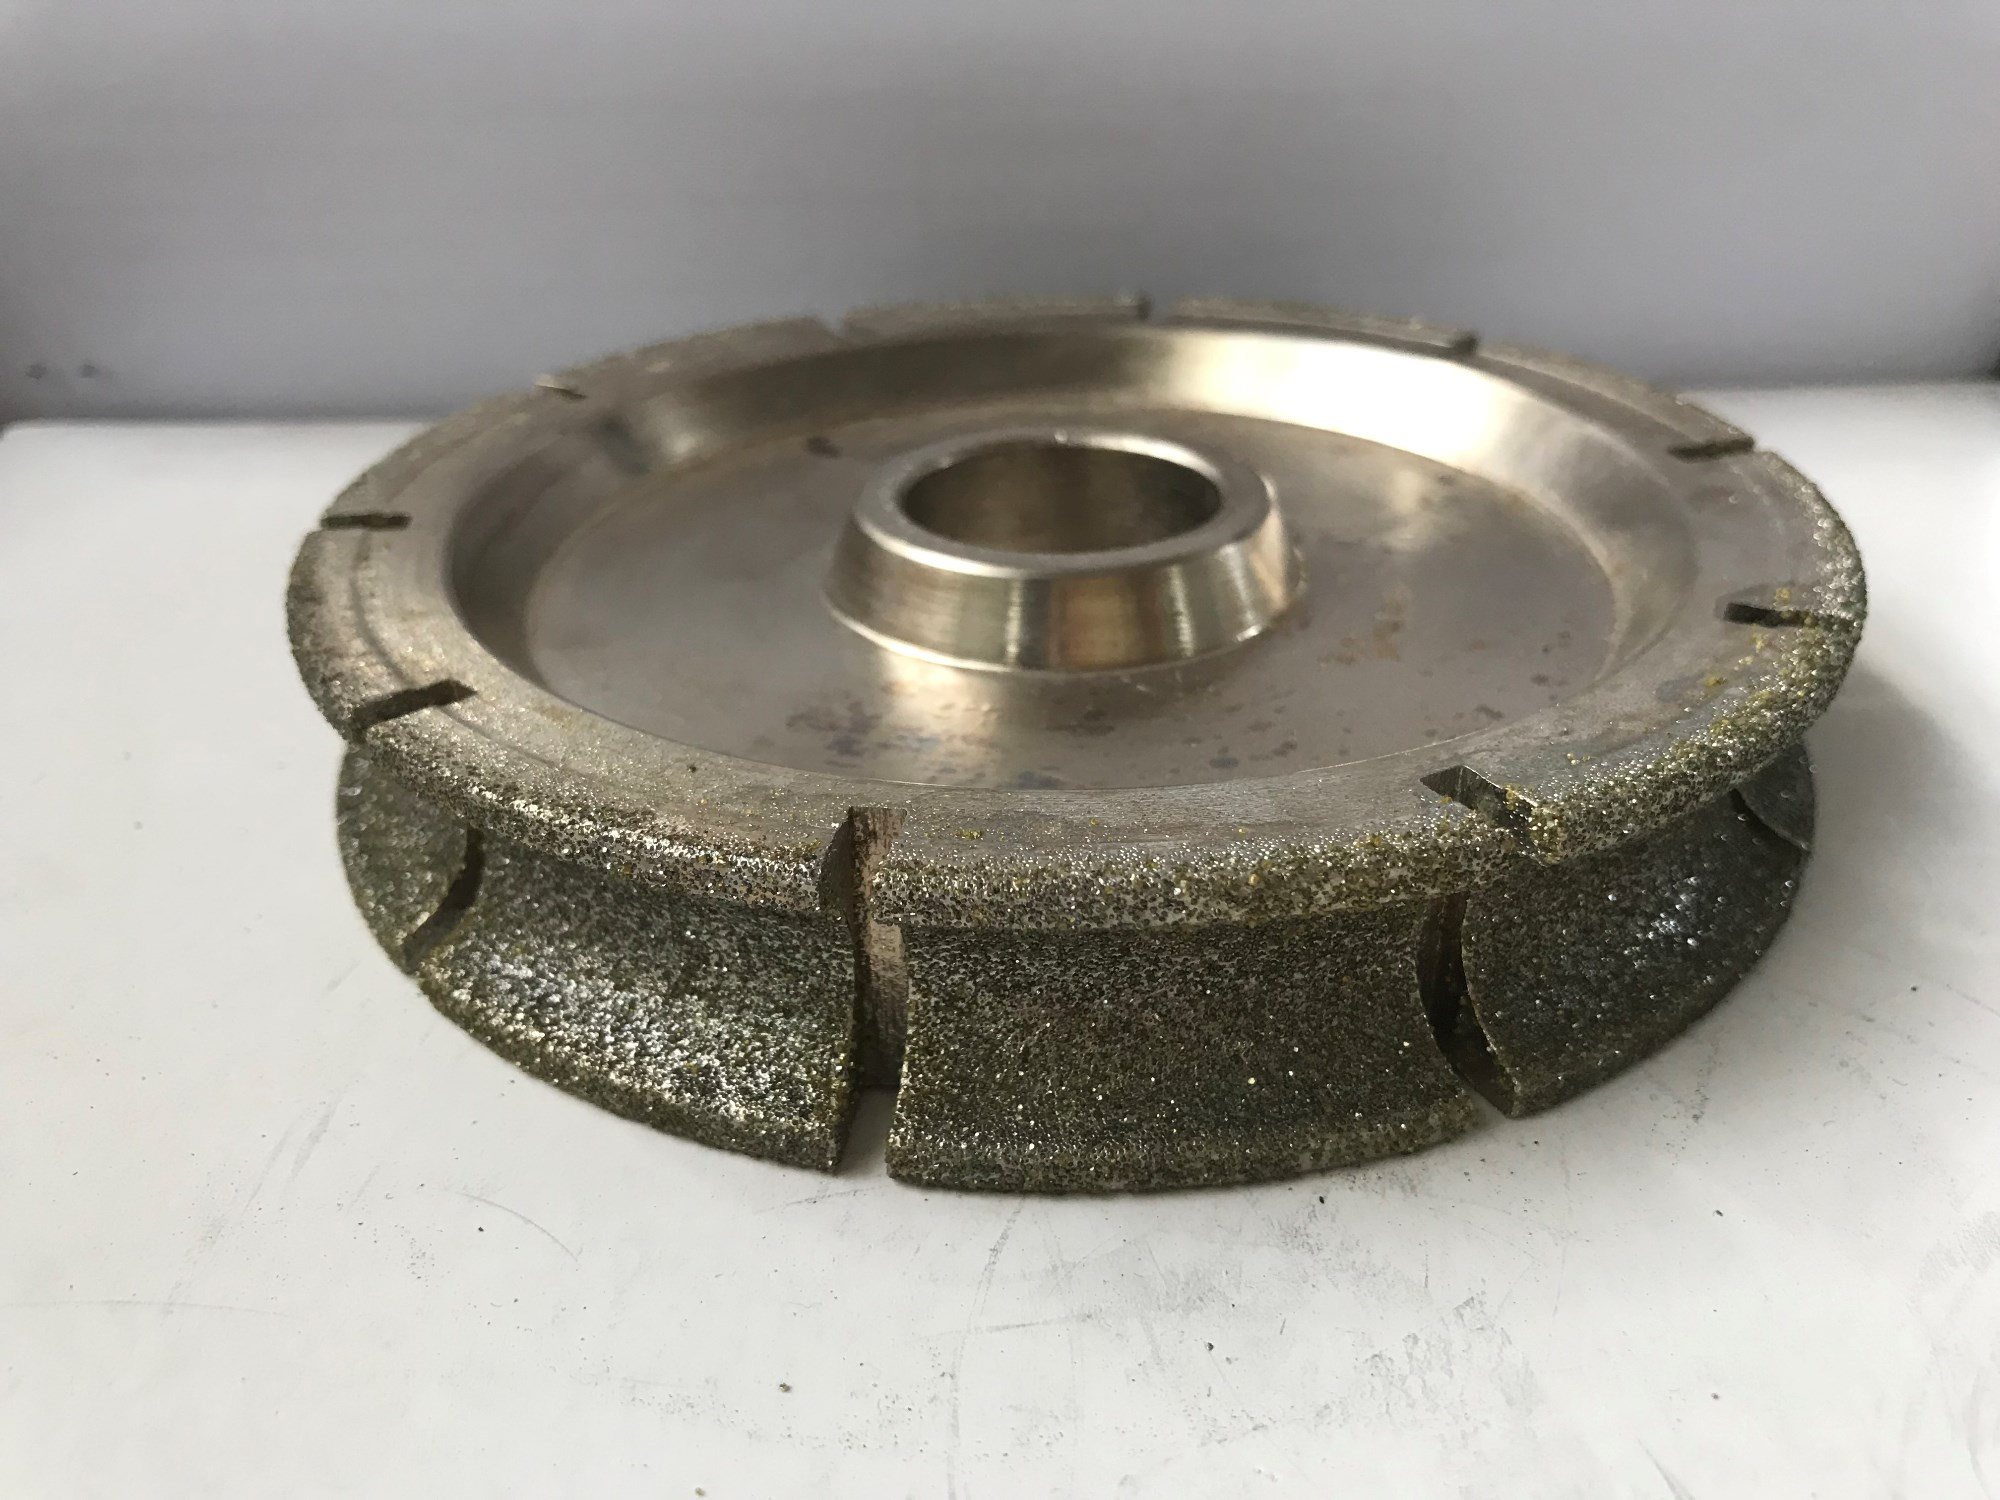 T.20mm Plating Molding Wheel Manufacturers, T.20mm Plating Molding Wheel Factory, Supply T.20mm Plating Molding Wheel